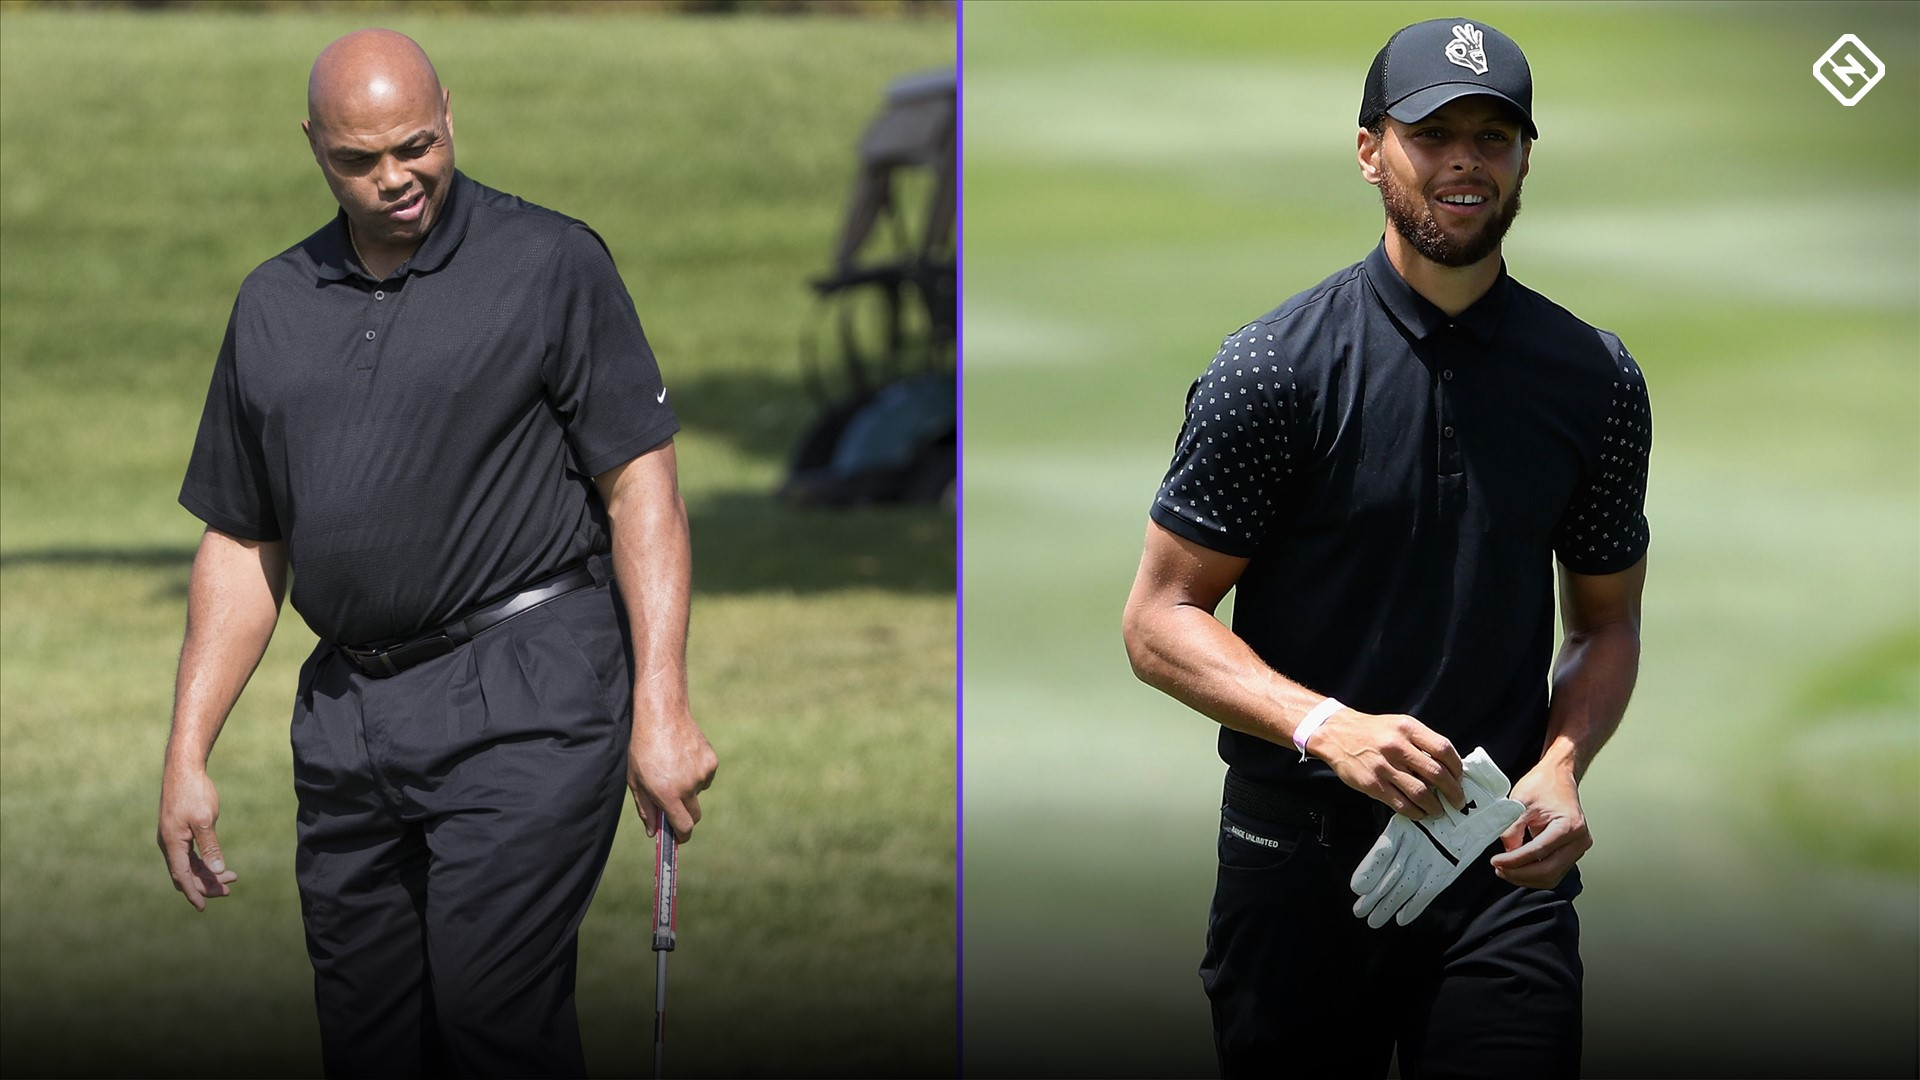 What channel is The Match 3 on? How to watch the Barkley-Mickelson vs. Curry-Manning golf match 1